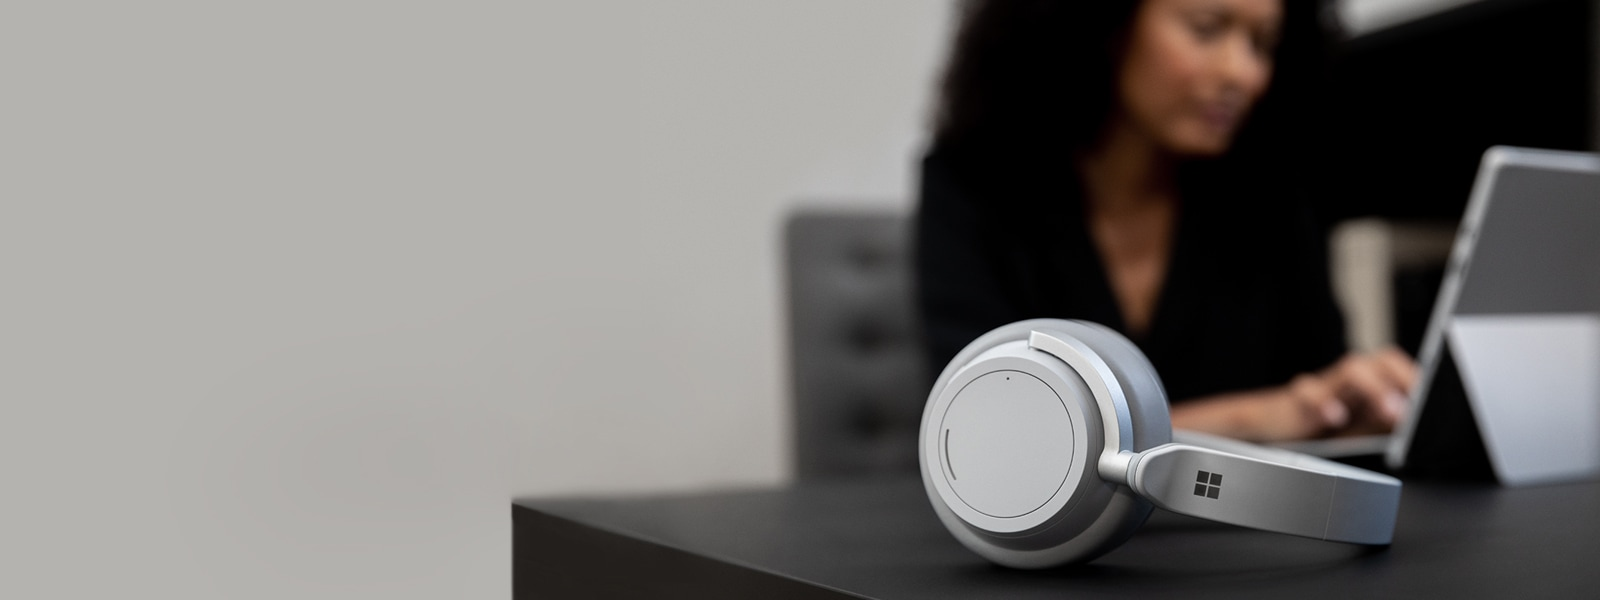 Surface Headphones rest on a desk in front of a woman using a Surface Pro in the background